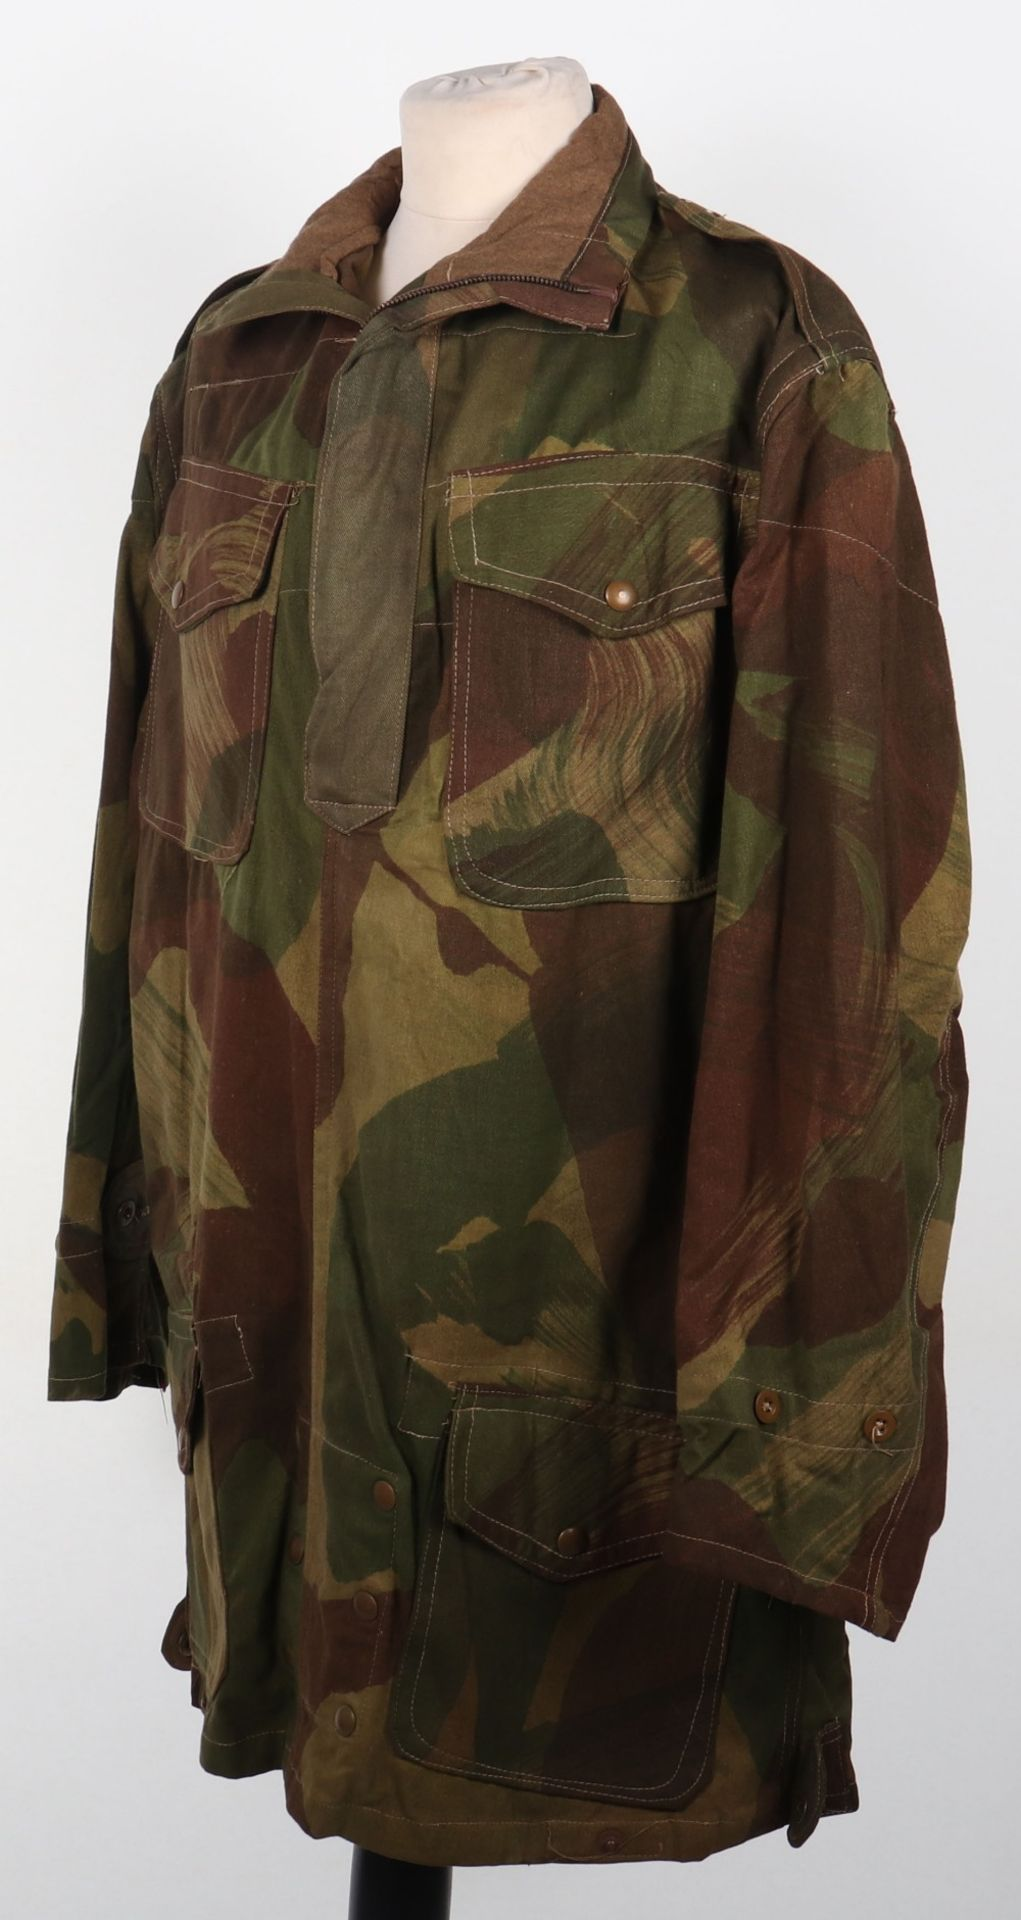 Mint Condition Large Size Airborne Forces Denison Smock - Image 3 of 17